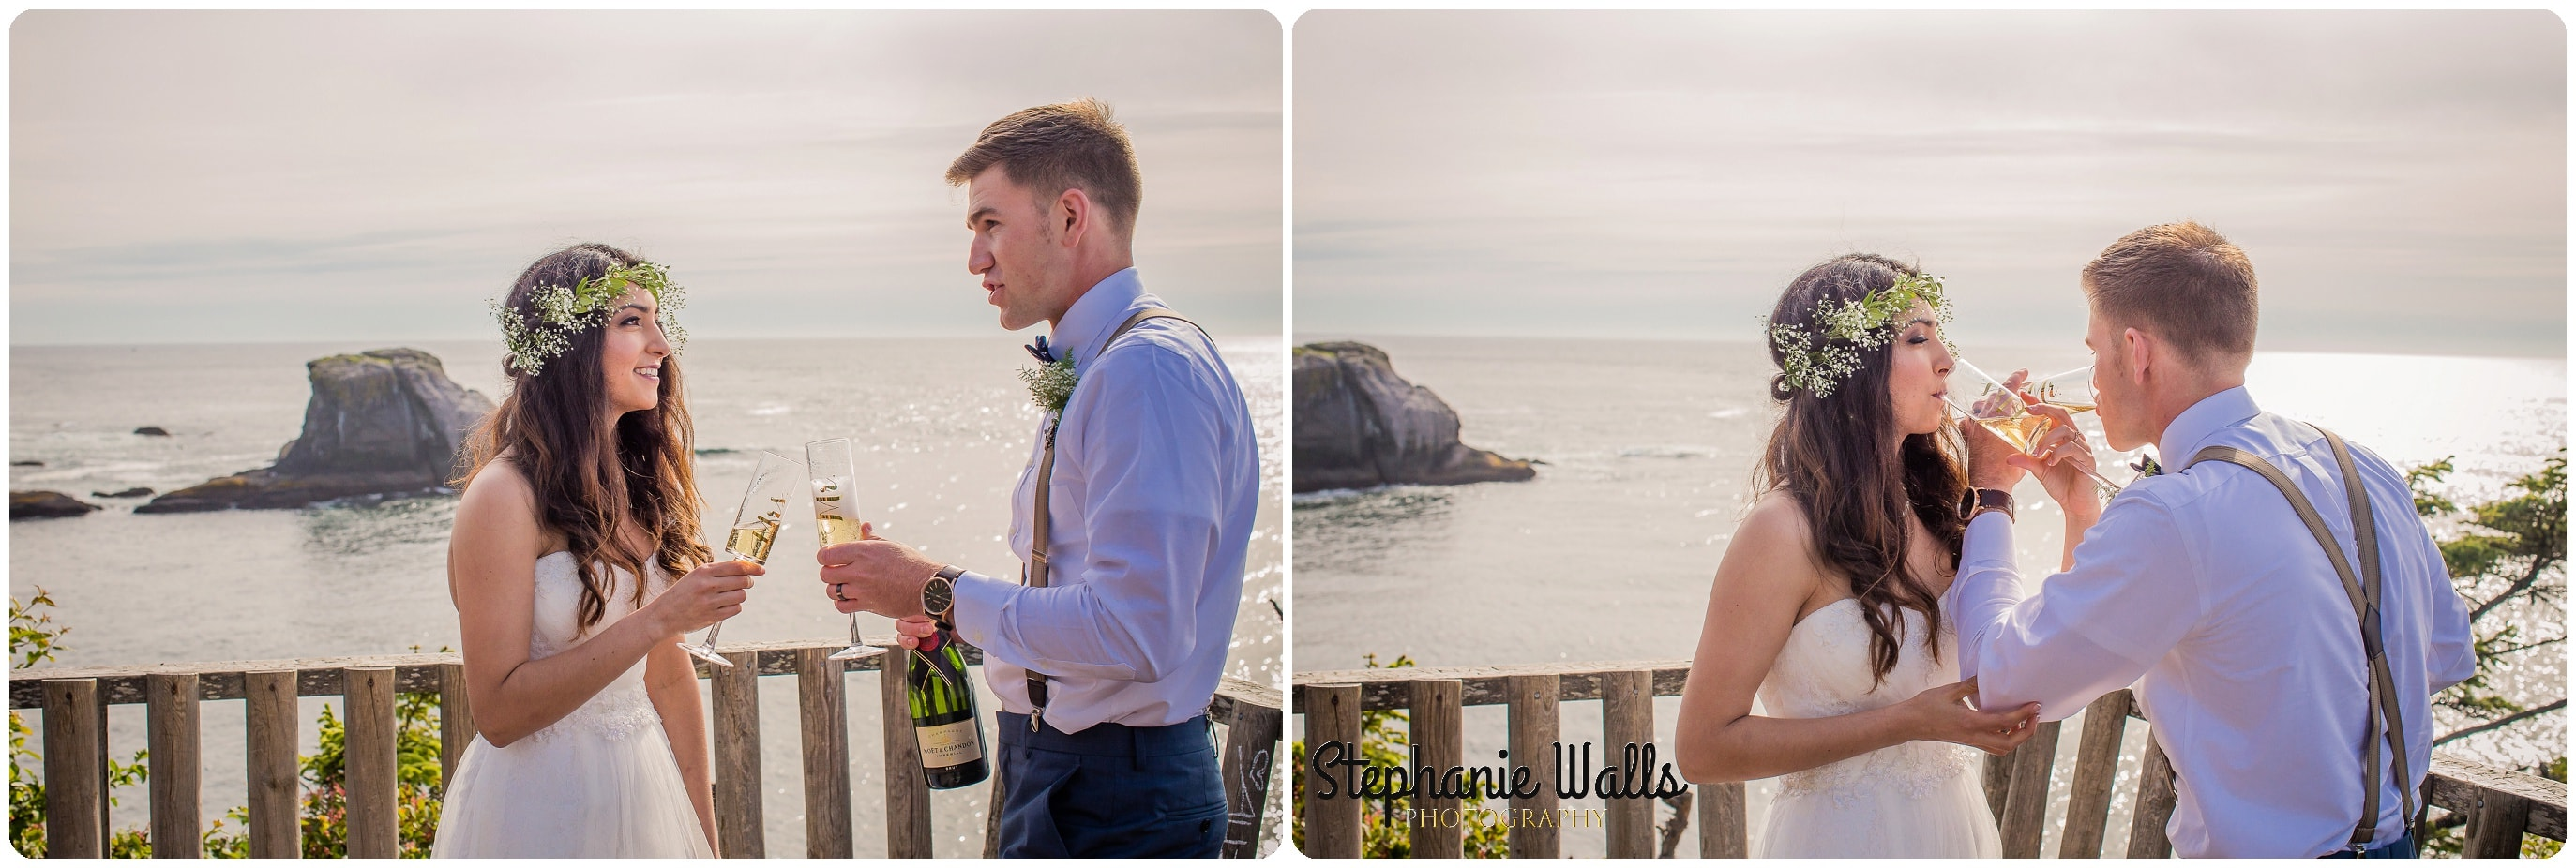 belfour 266 INTIMATE CLIFFSIDE ELOPEMENT | CAPE FLATTERY NEAH BAY | STEPHANIE WALLS PHOTOGRAPHY